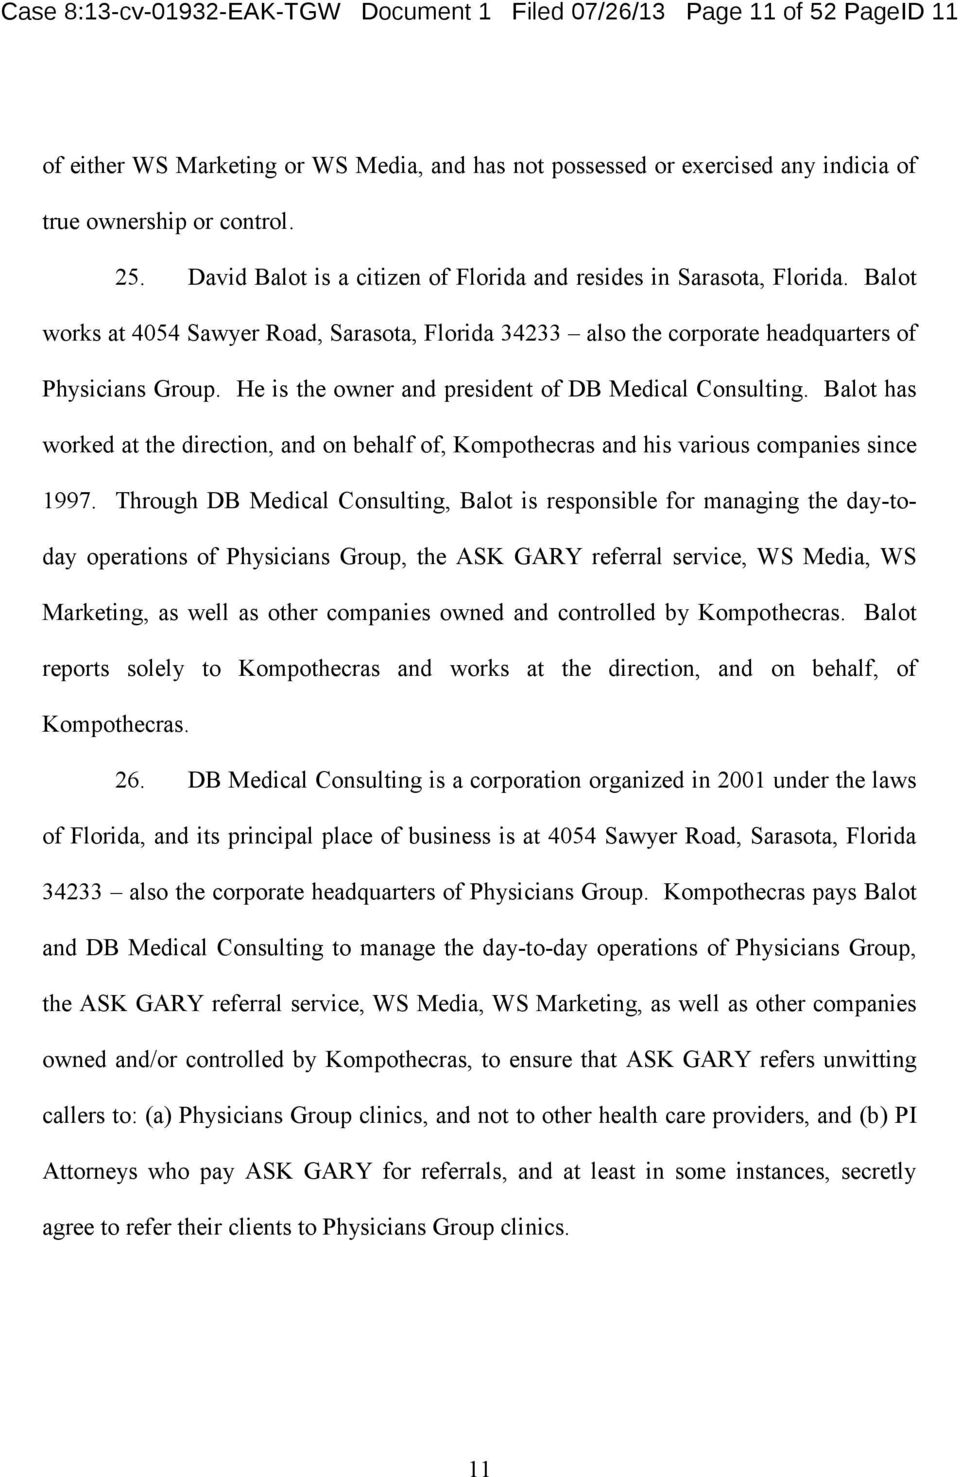 David Balot is a citizen of Florida and resides in Sarasota, Florida. Balot works at 4054 Sawyer Road, Sarasota, Florida 34233 also the corporate headquarters of Physicians Group.